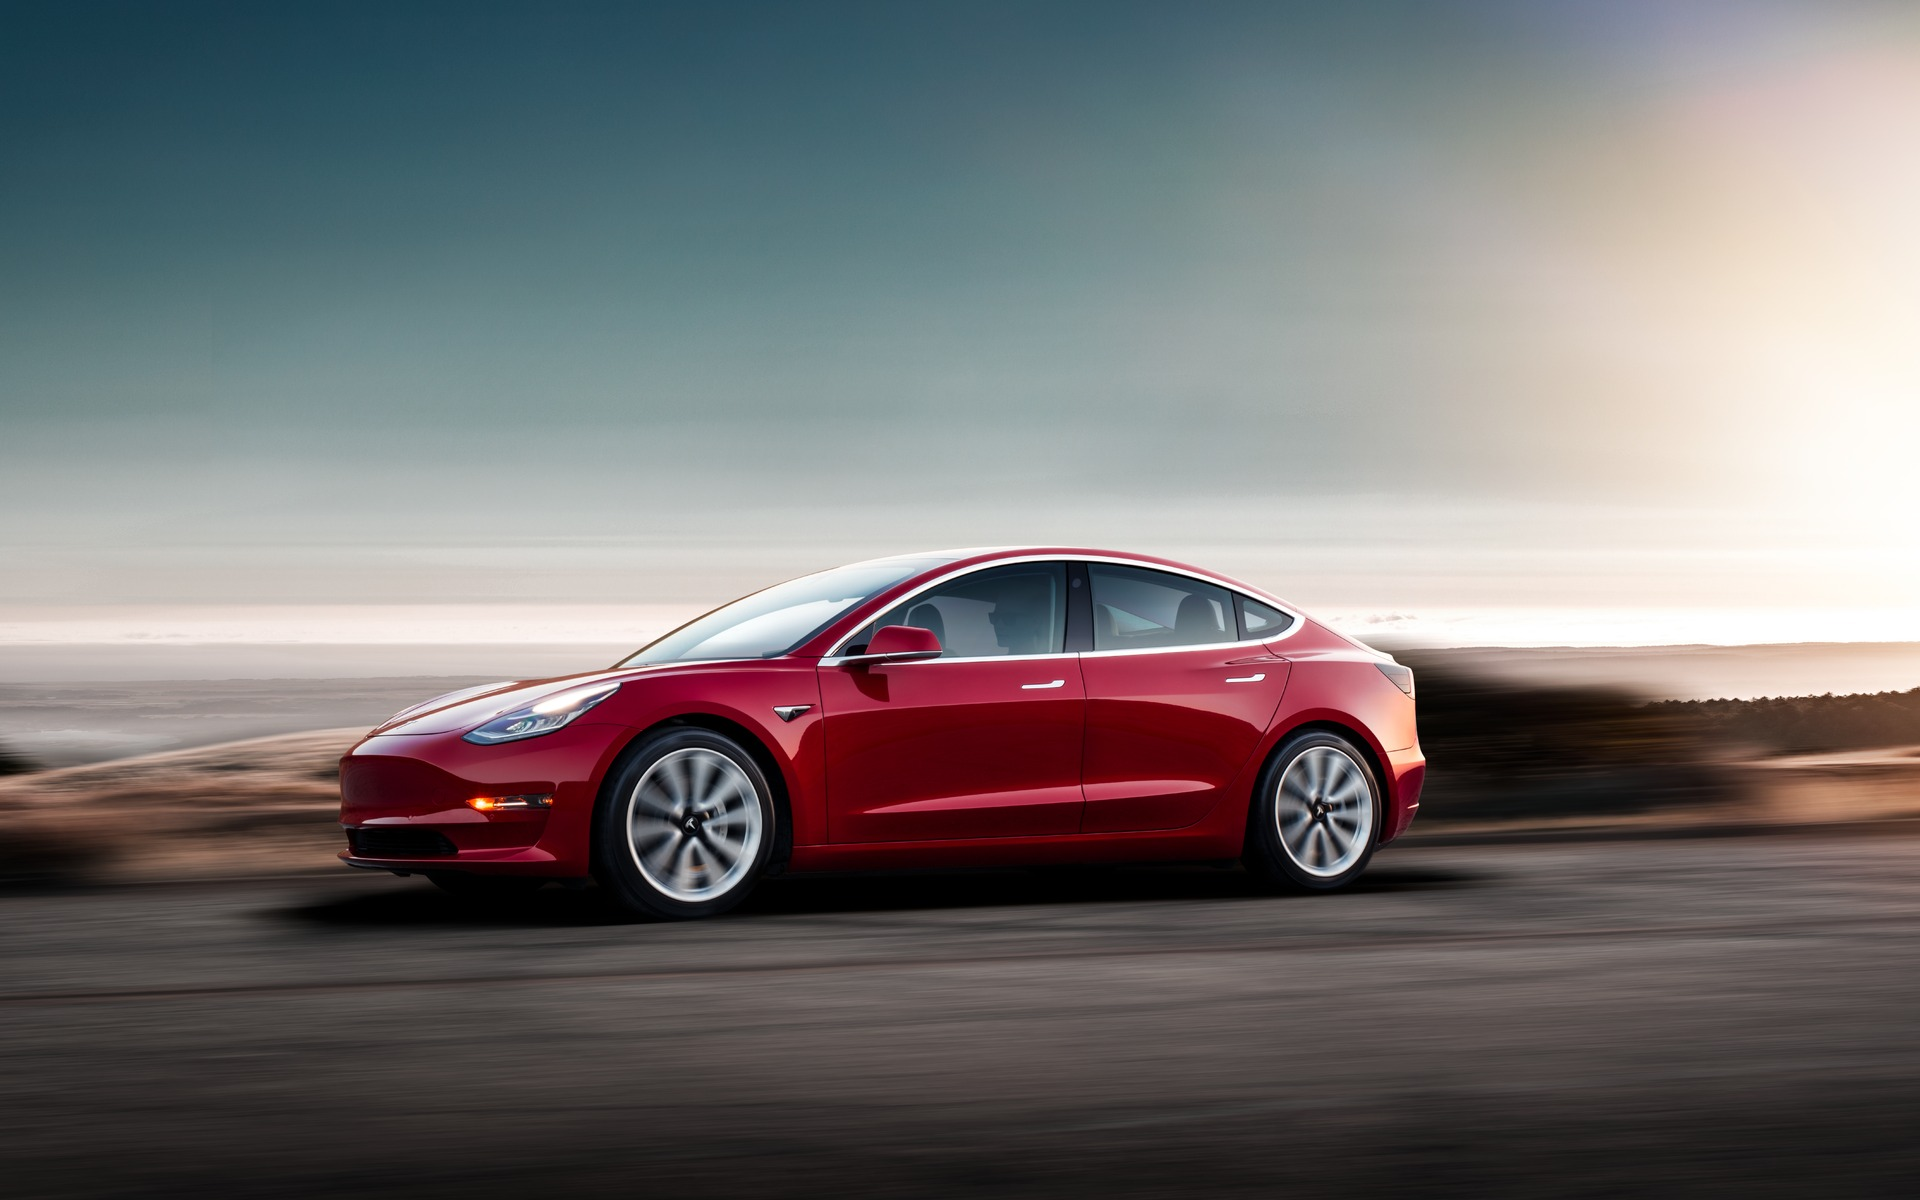 Piece Automobile Prix Tesla Confirme Le Prix De La Model 3 De Base Guide Auto